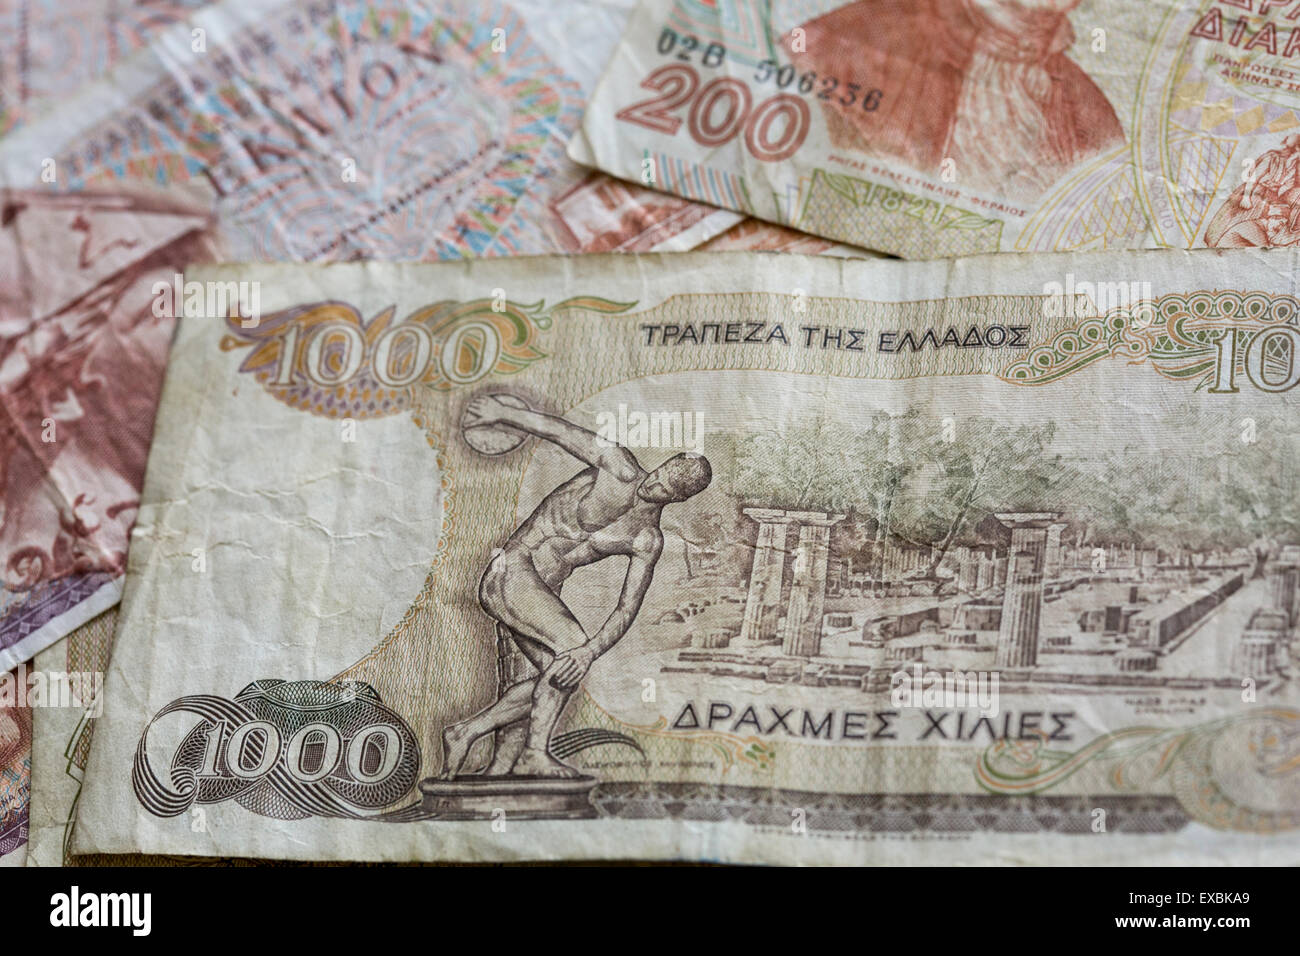 An arranged photo showing obsolete Greek Drachma currency notes in from the pre-Euro currency era. - Stock Image